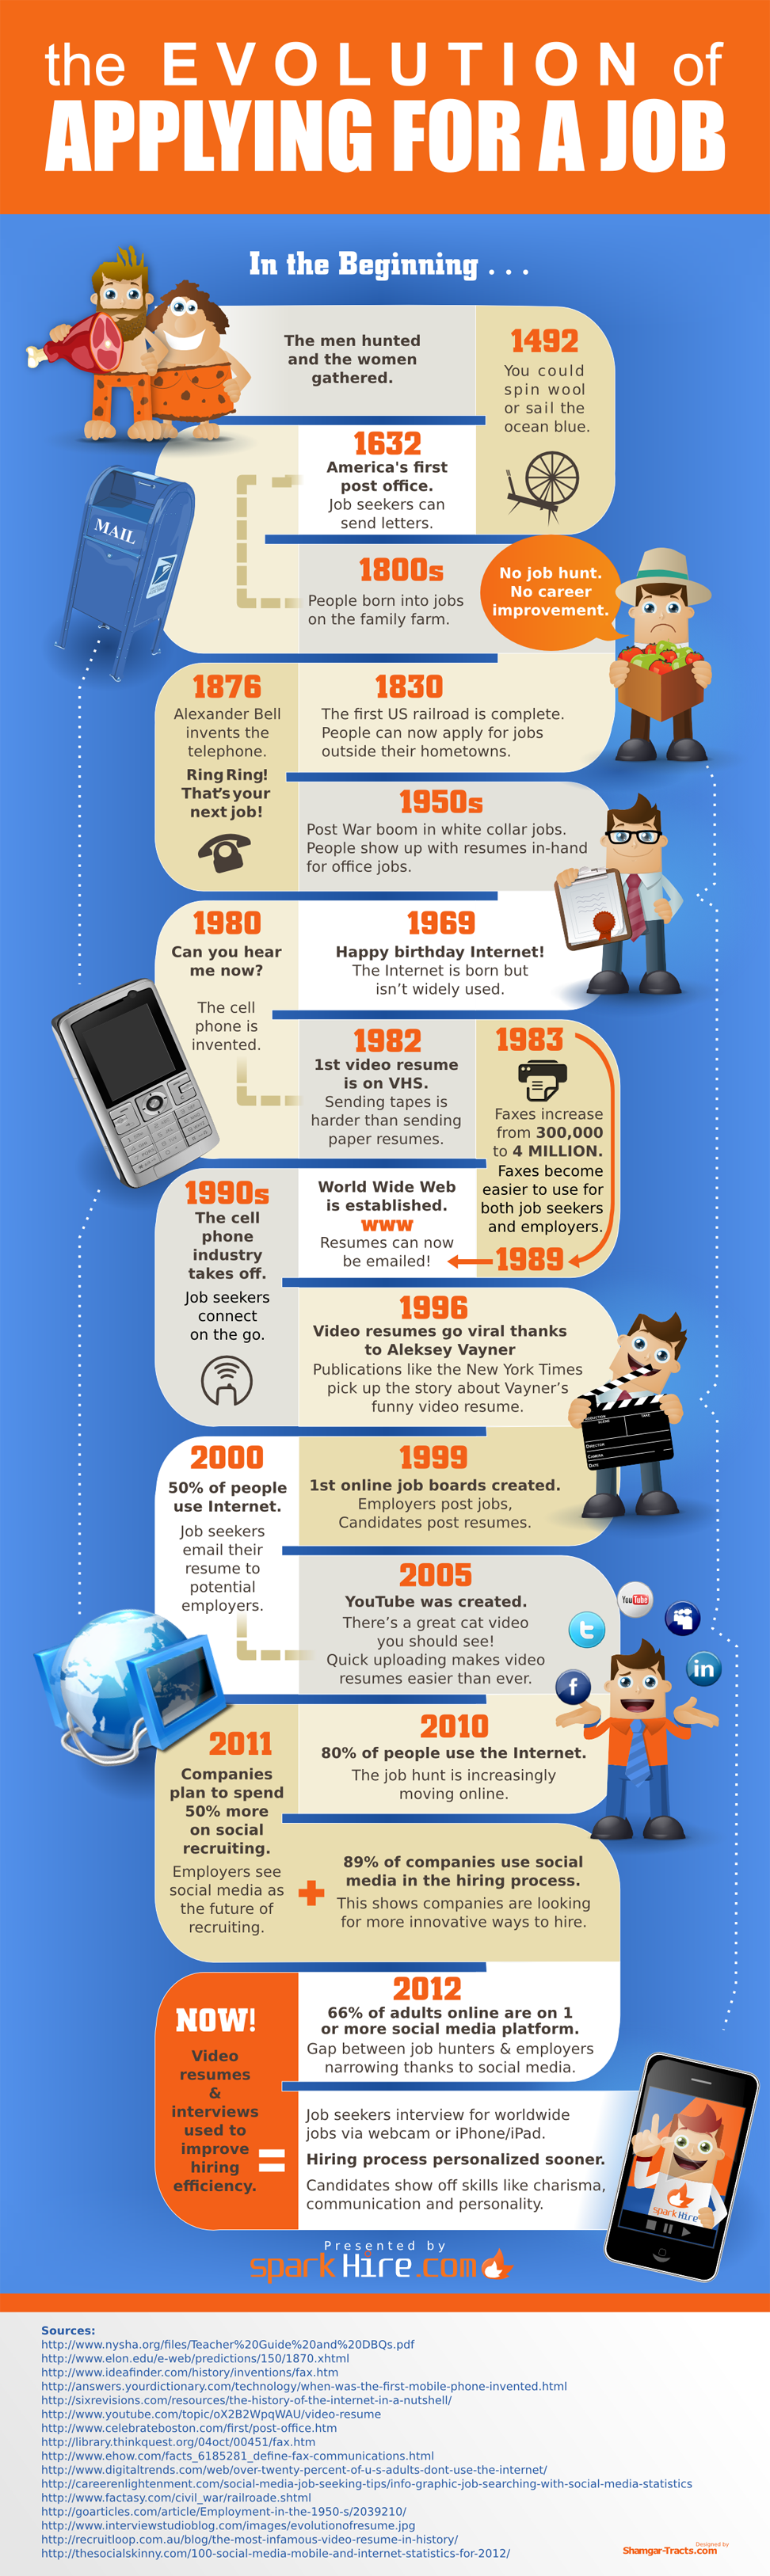 The Evolution of the Job Application - we've come a long way, baby!